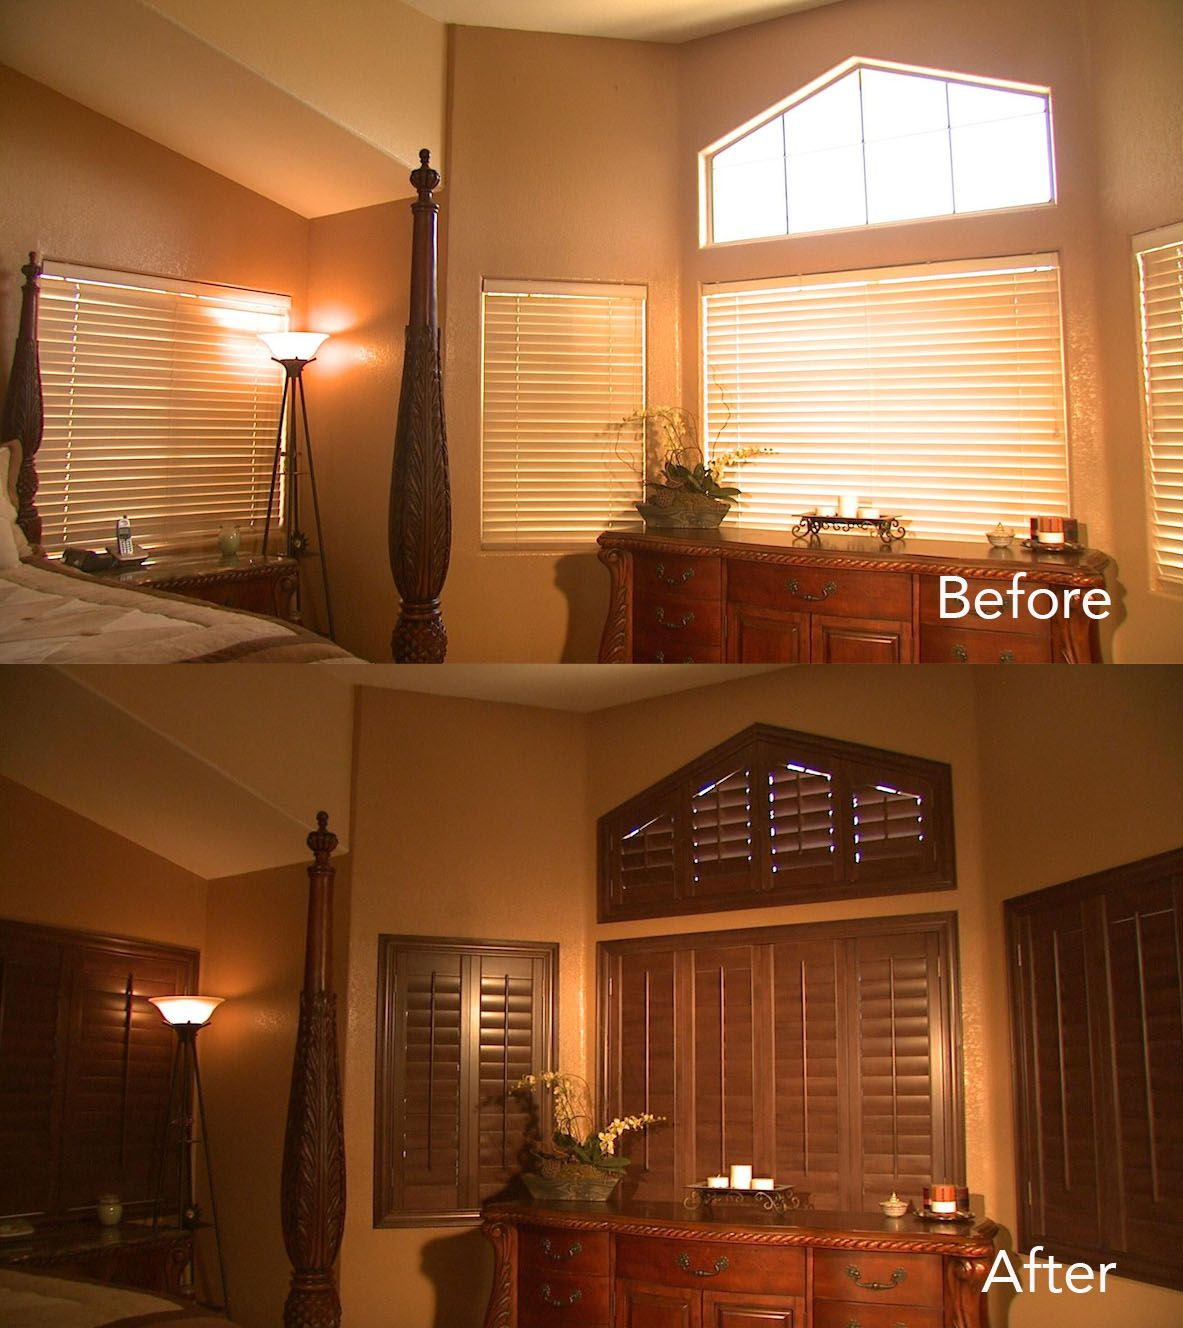 Notice how the ovation shutters compliment the wood accents in the